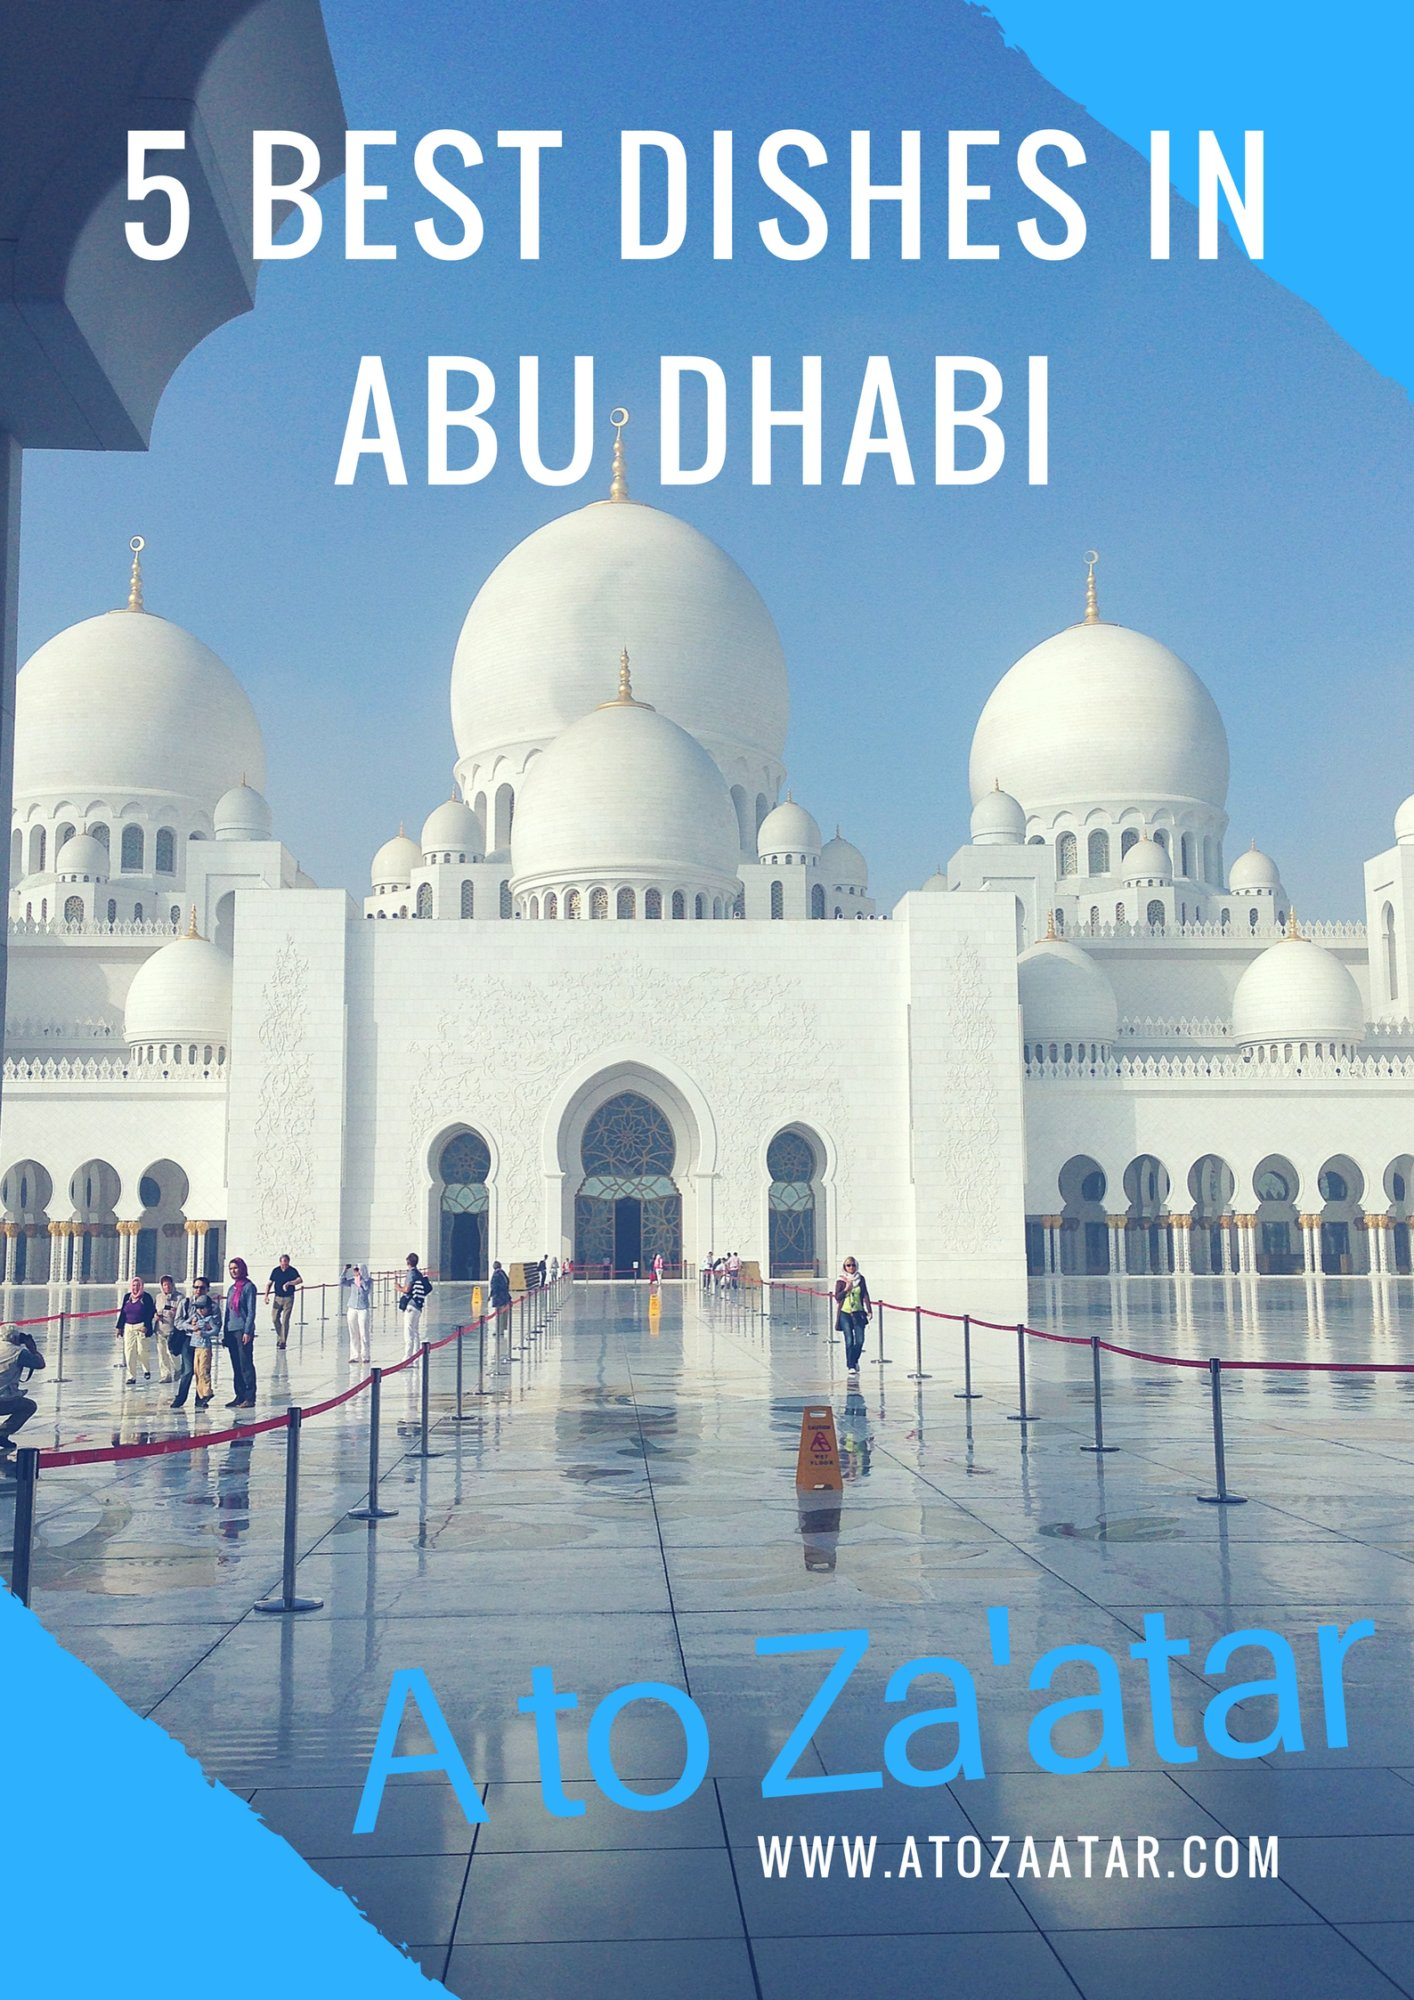 Top 5 Dishes in Abu Dhabi (2017 edition).